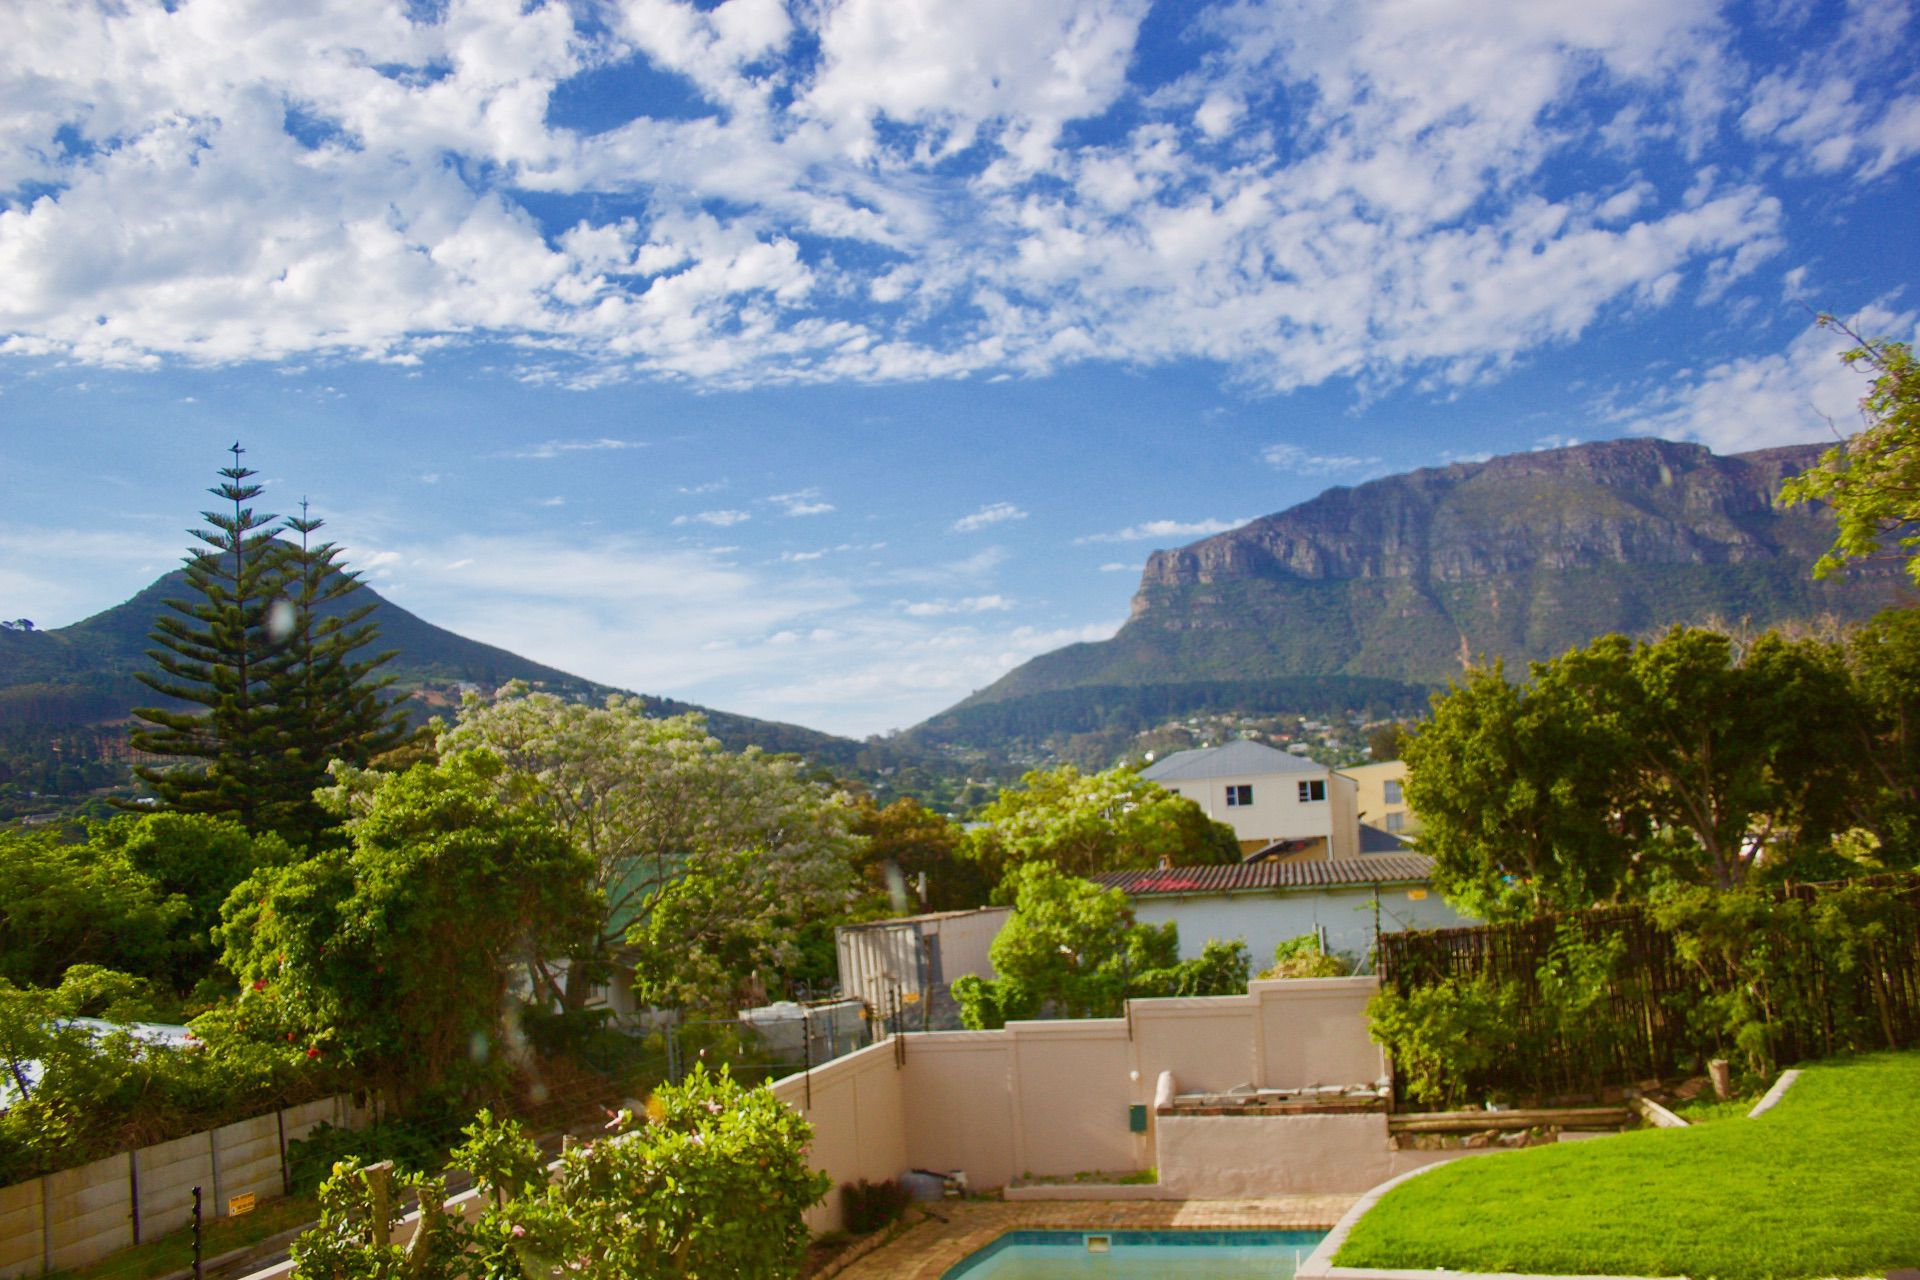 House in Hout Bay - view